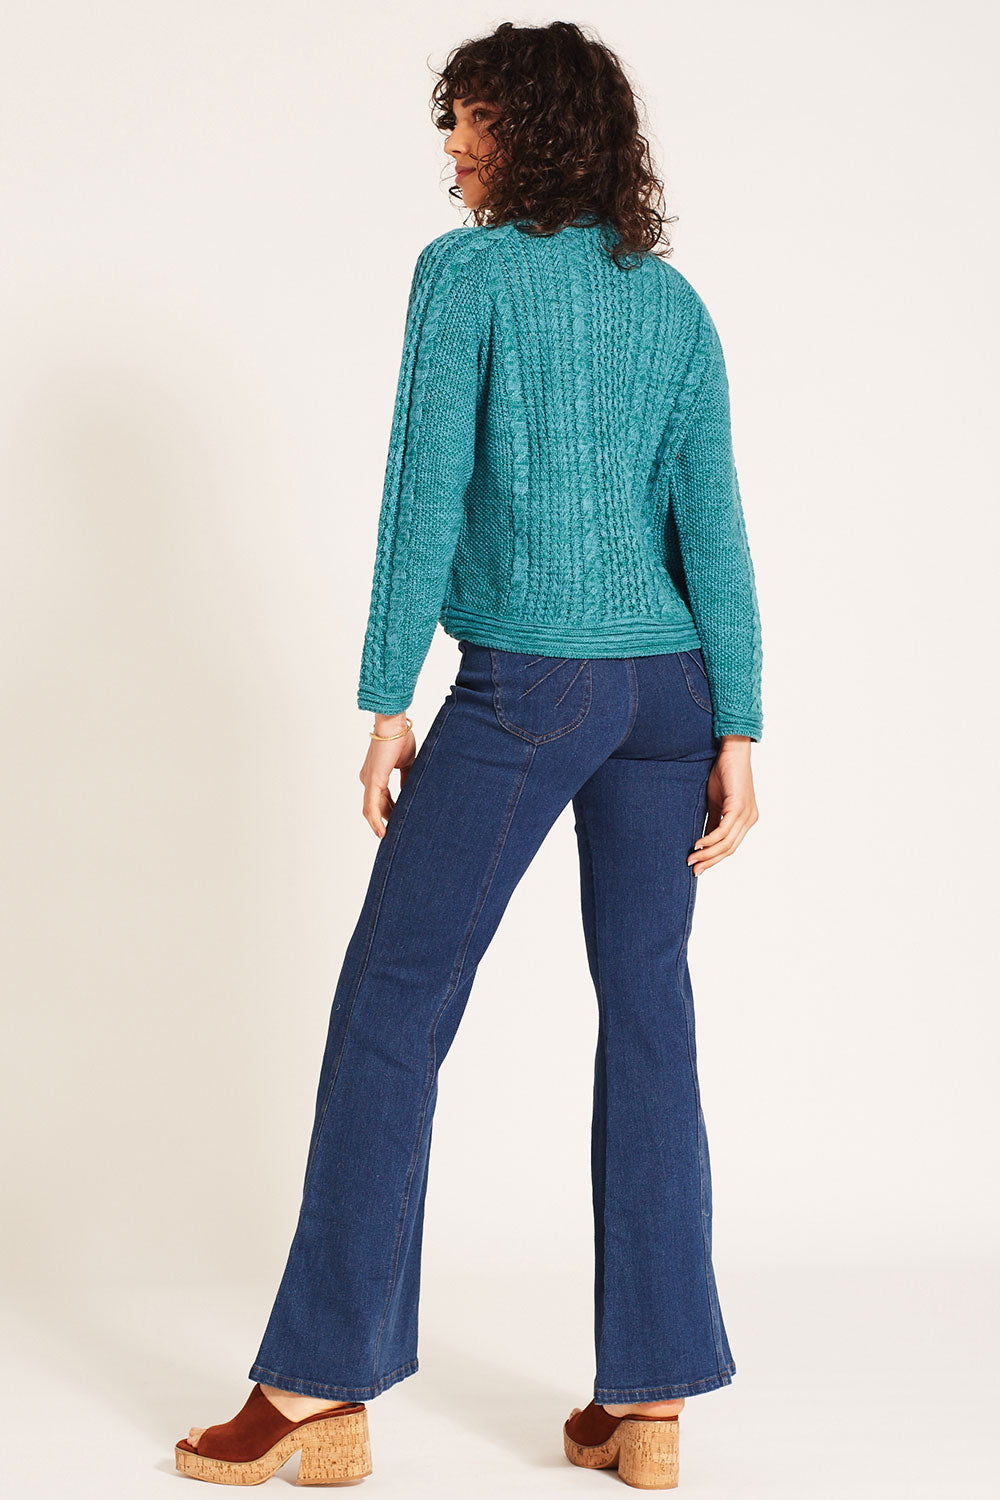 Avalon Cable Knit Pullover in Aquamarine